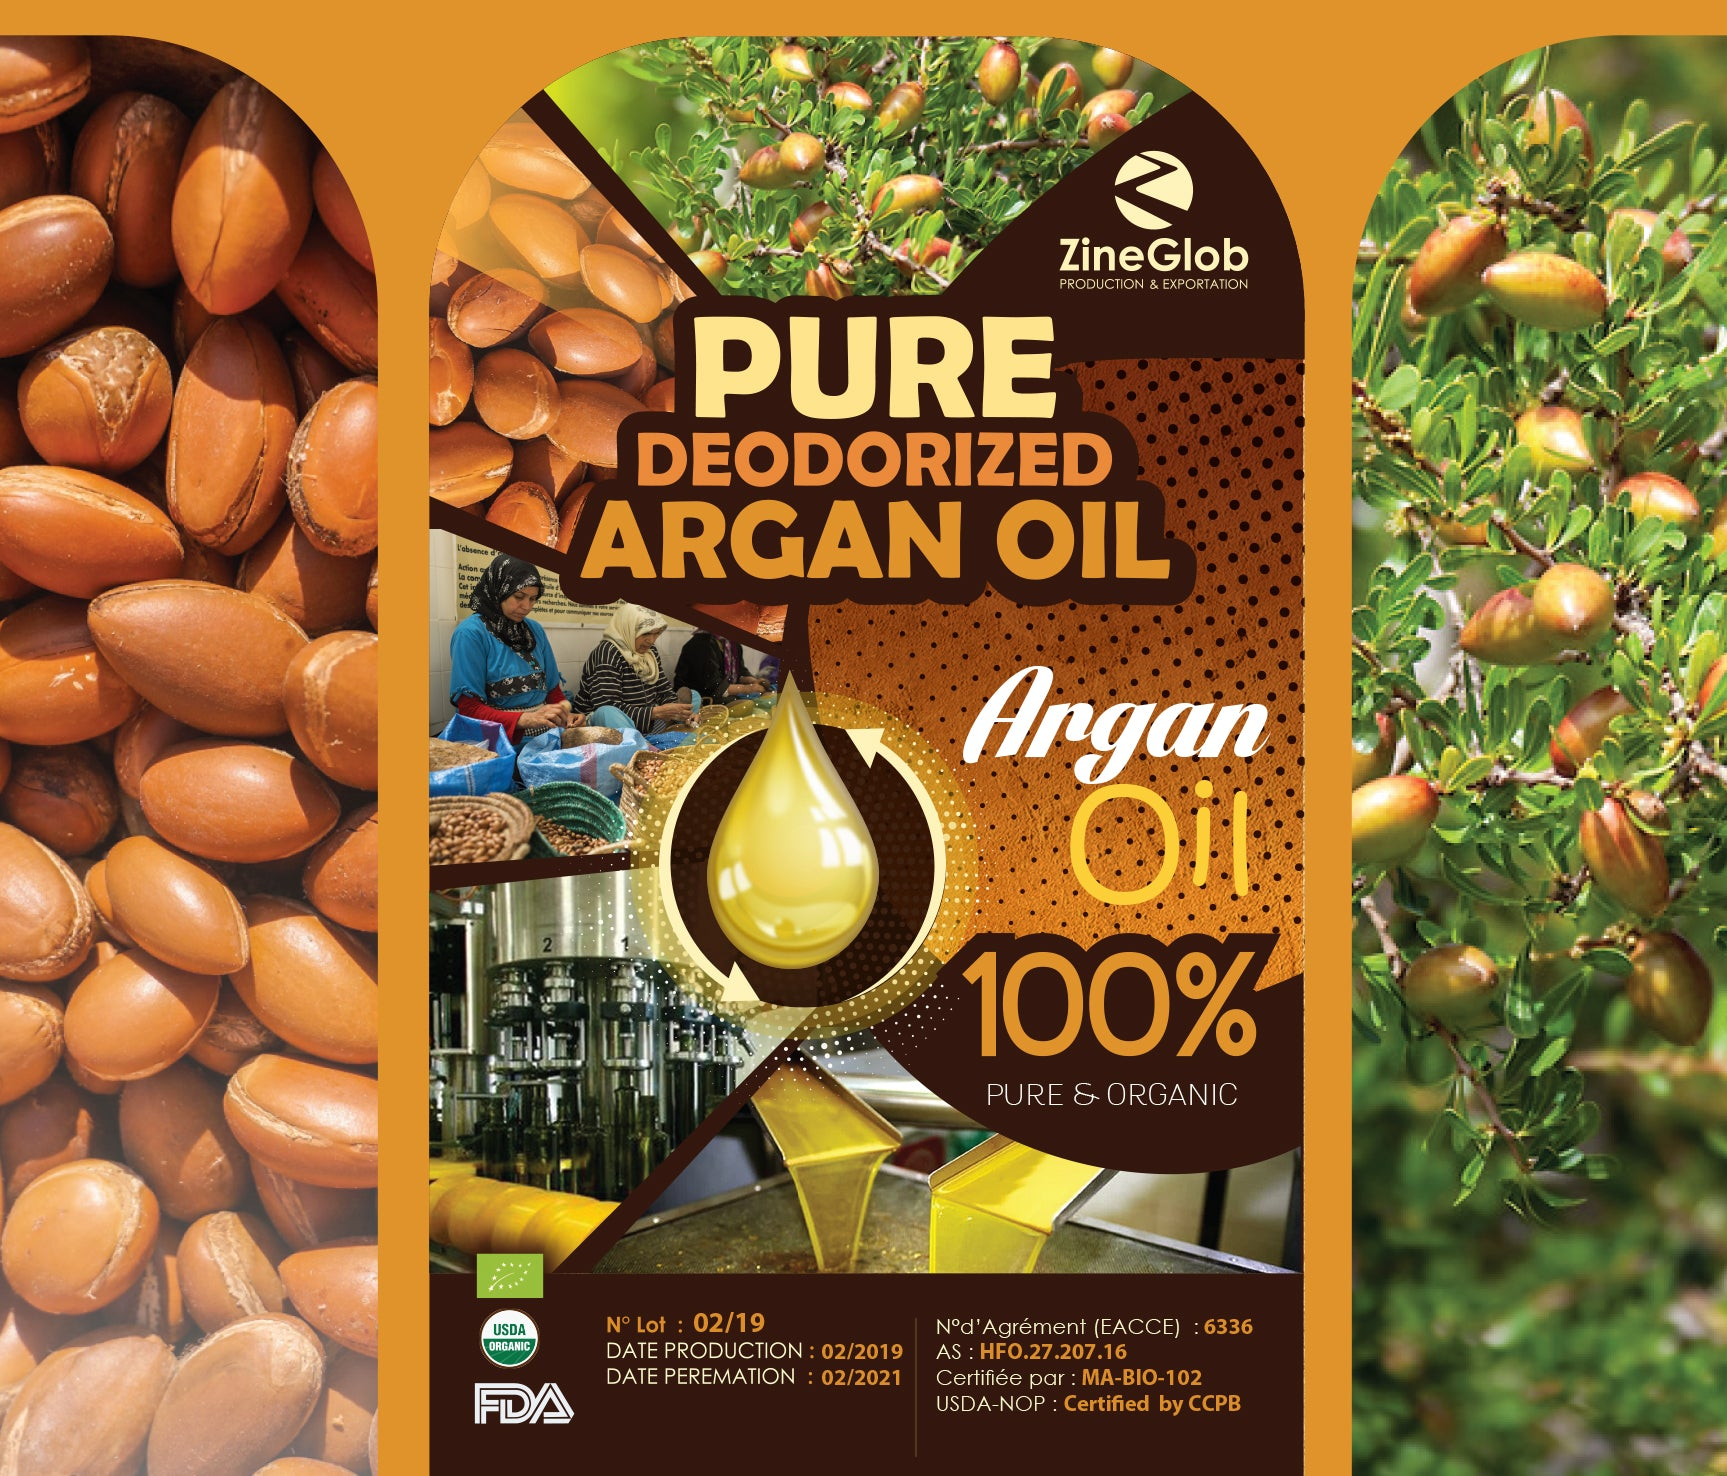 Unroasted Argan oil